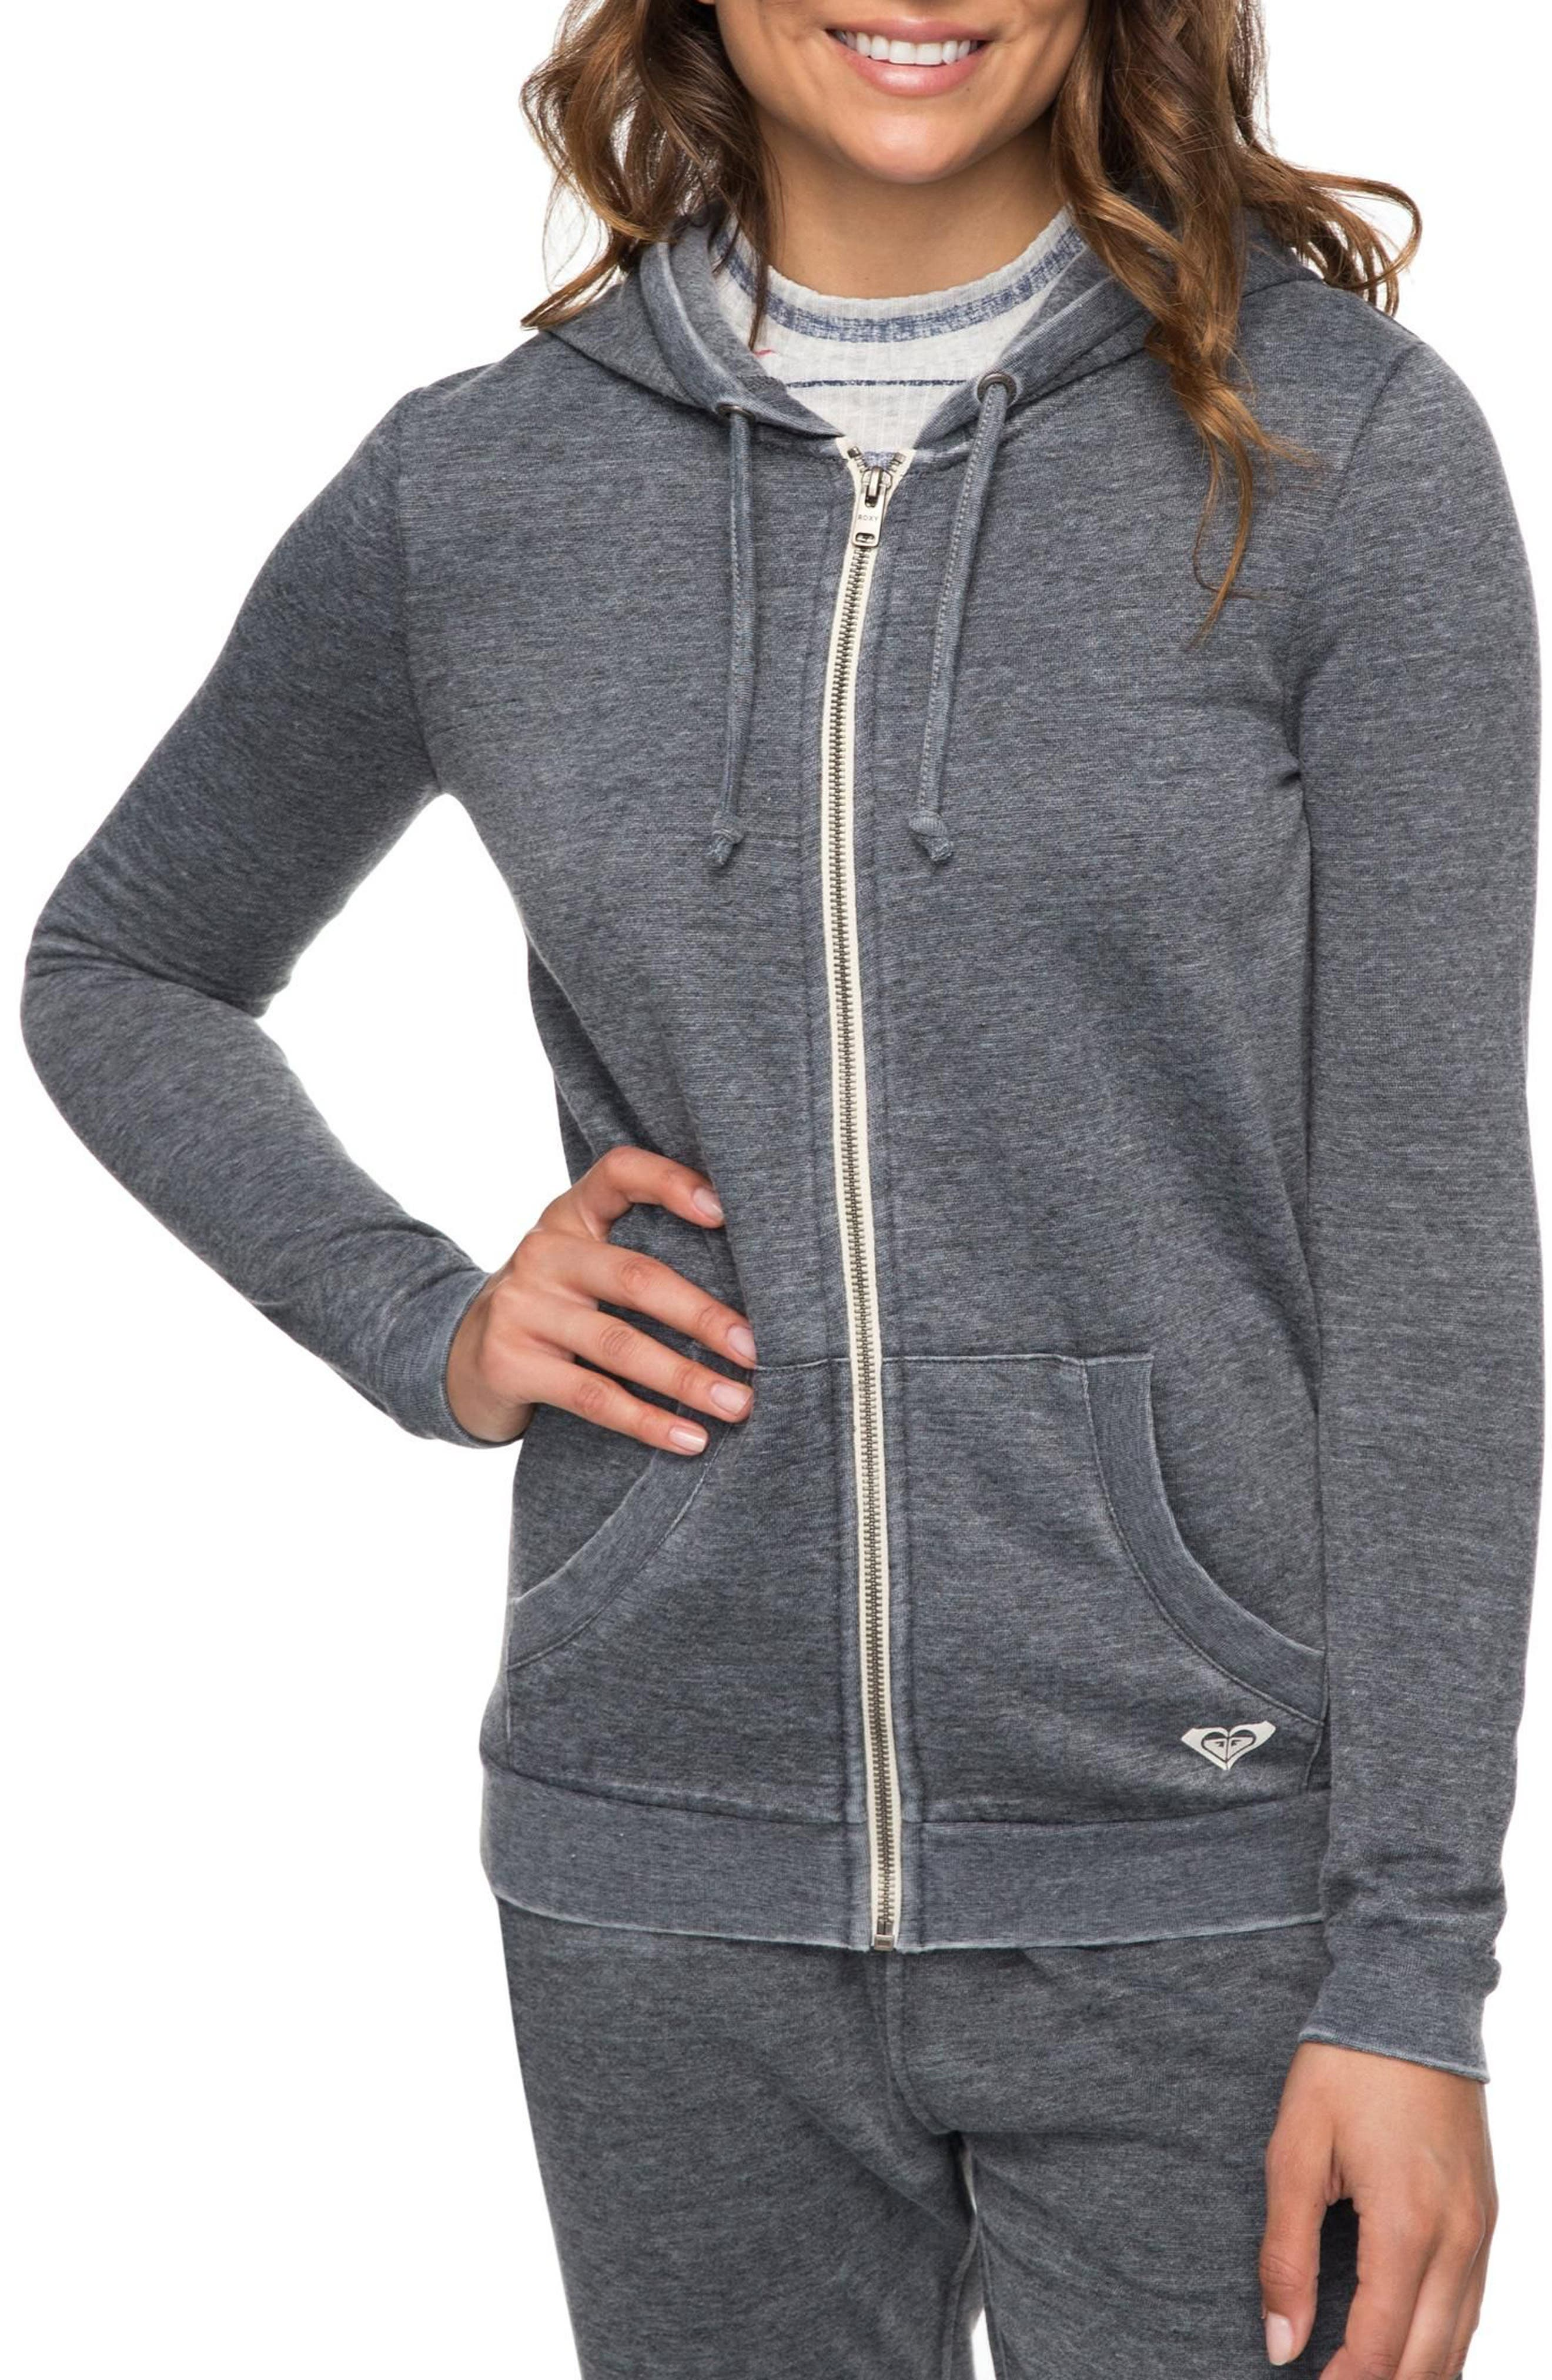 Groovy Stardust Tidewall Hoodie,                         Main,                         color, Anthracite